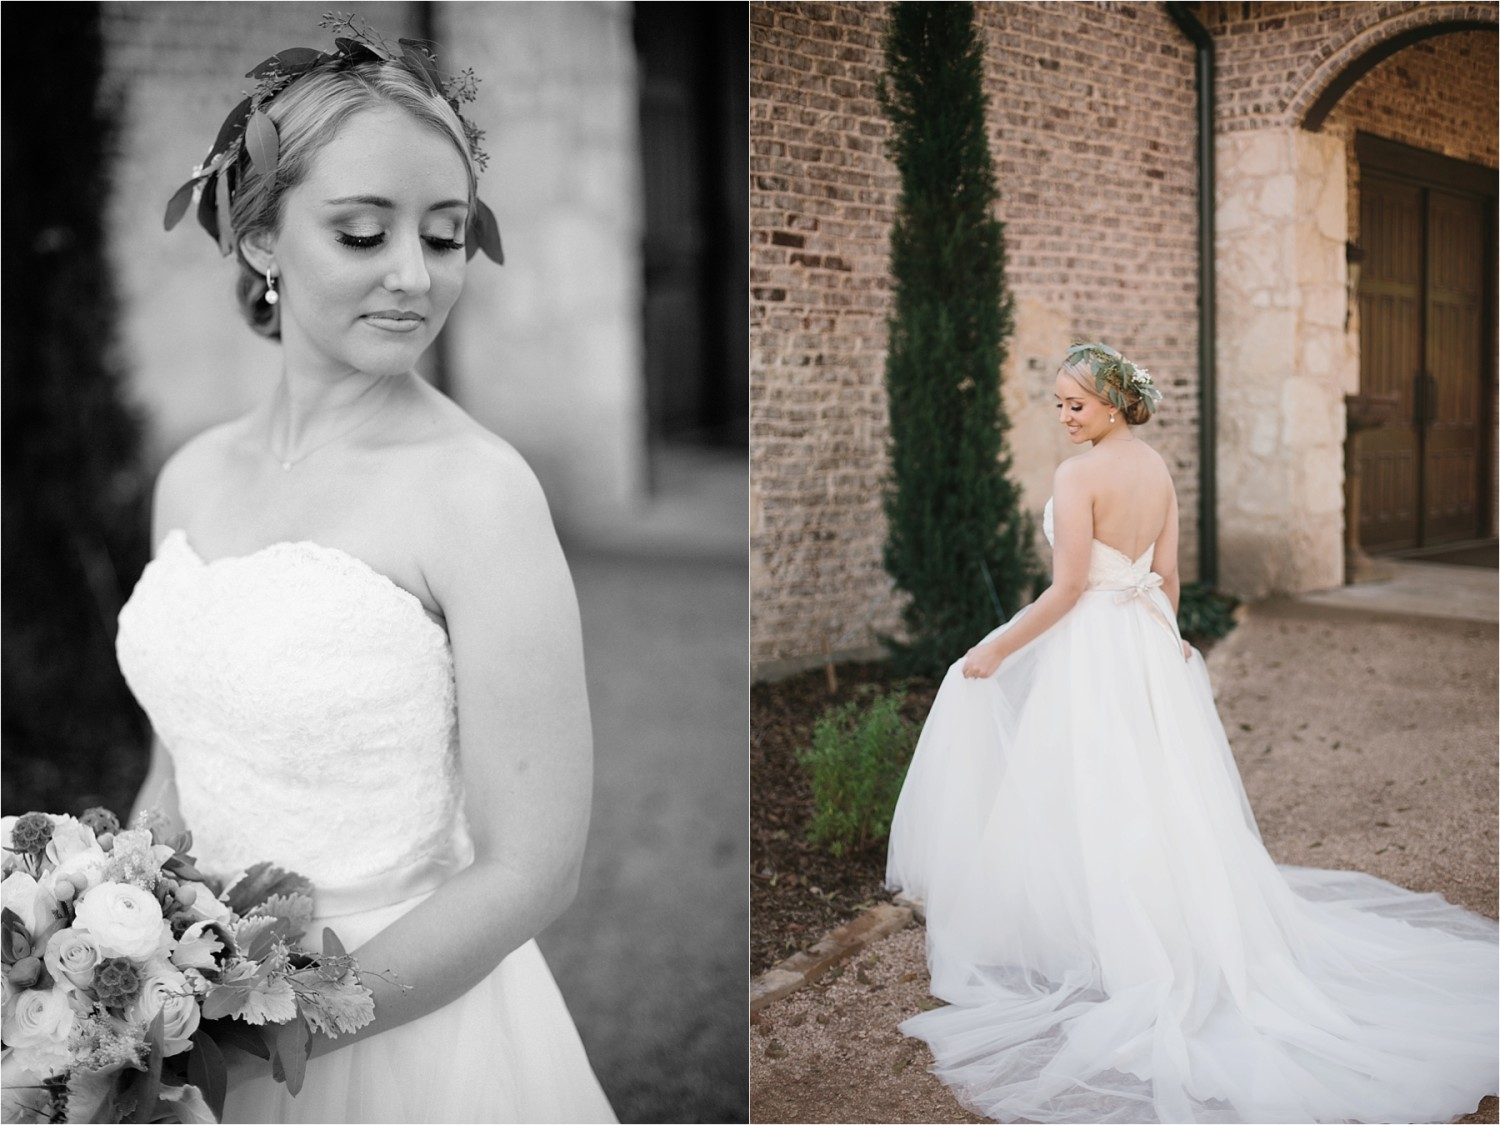 brad-lara-__-a-grey-and-blush-pink-intimate-wedding-at-hidden-waters-event-center-in-waxahachie-tx-by-north-texas-wedding-photographer-rachel-meagan-photography-_-016